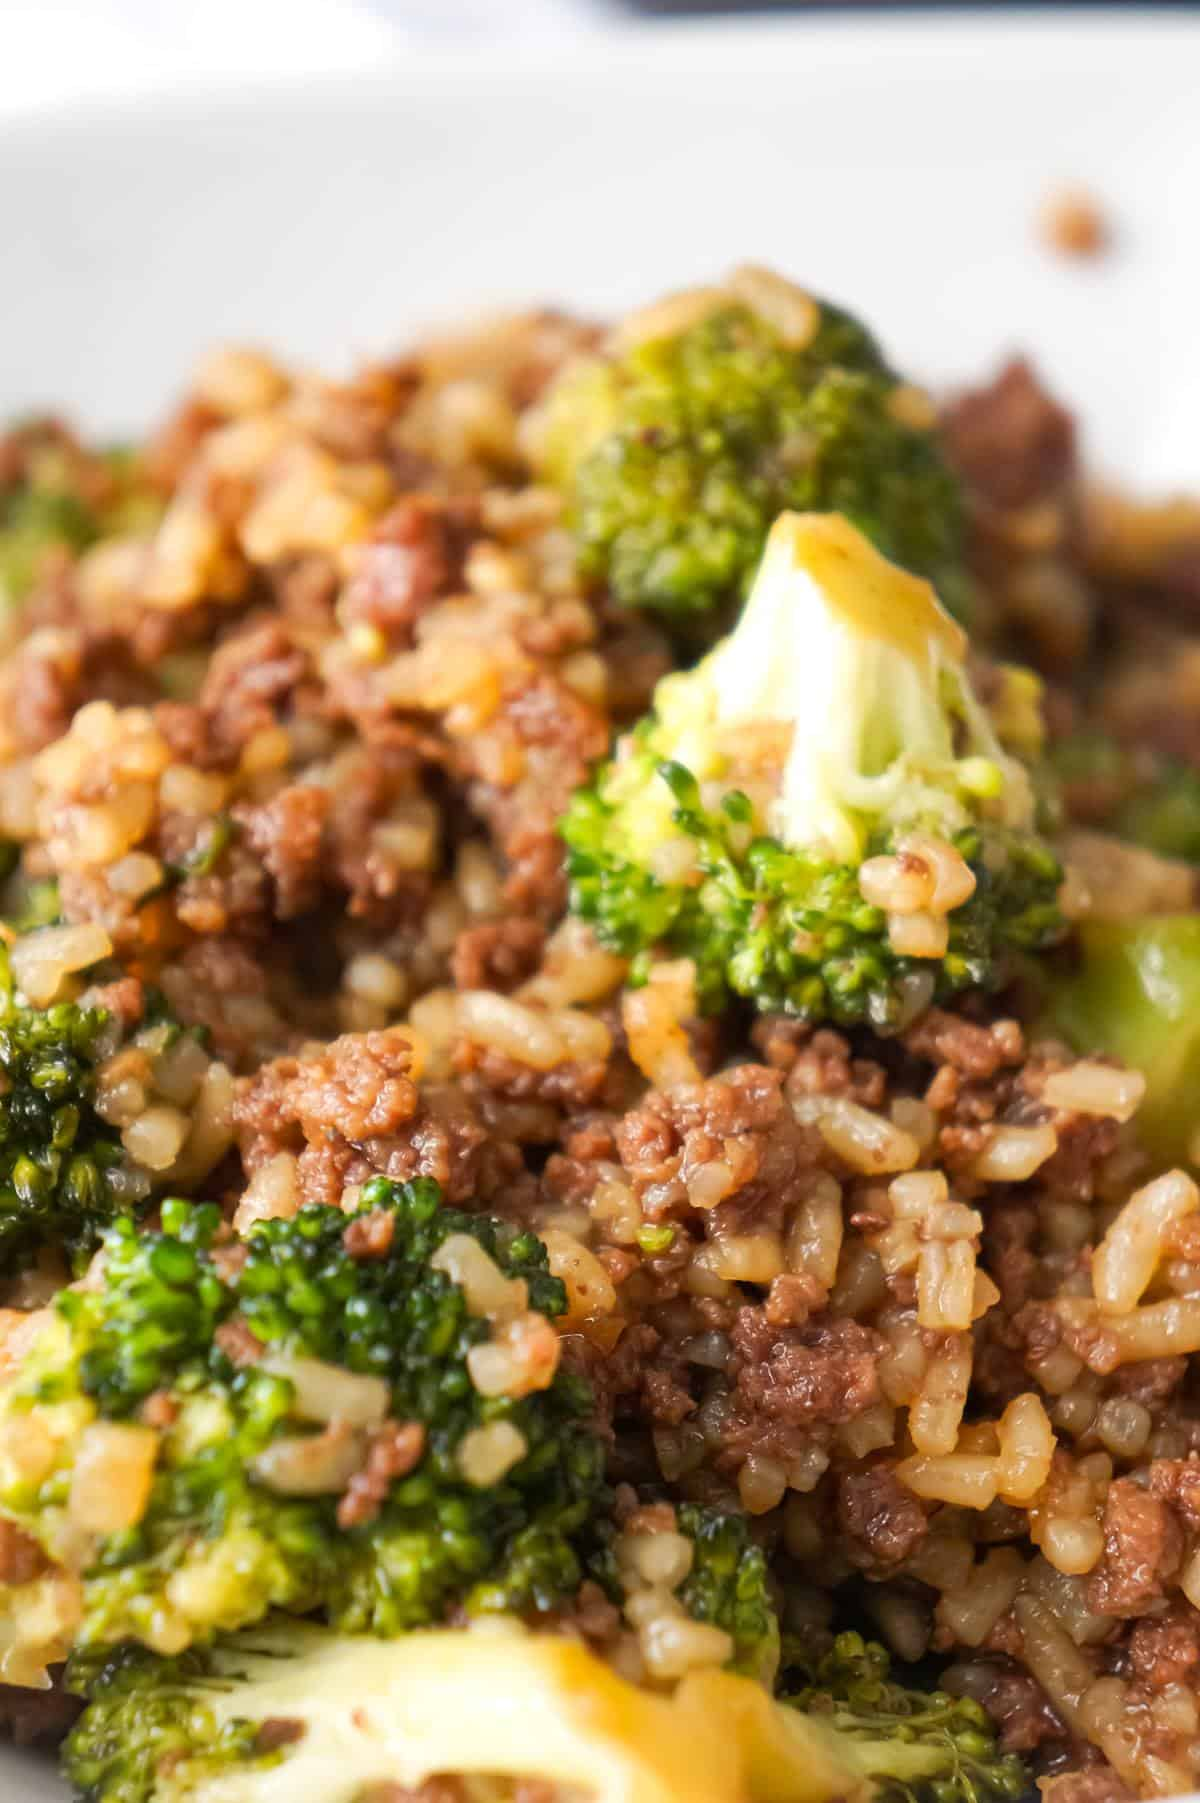 Honey Garlic Ground Beef and Rice with Broccoli is an easy ground beef dinner recipe loaded with instant rice and broccoli florets all tossed in honey garlic sauce.